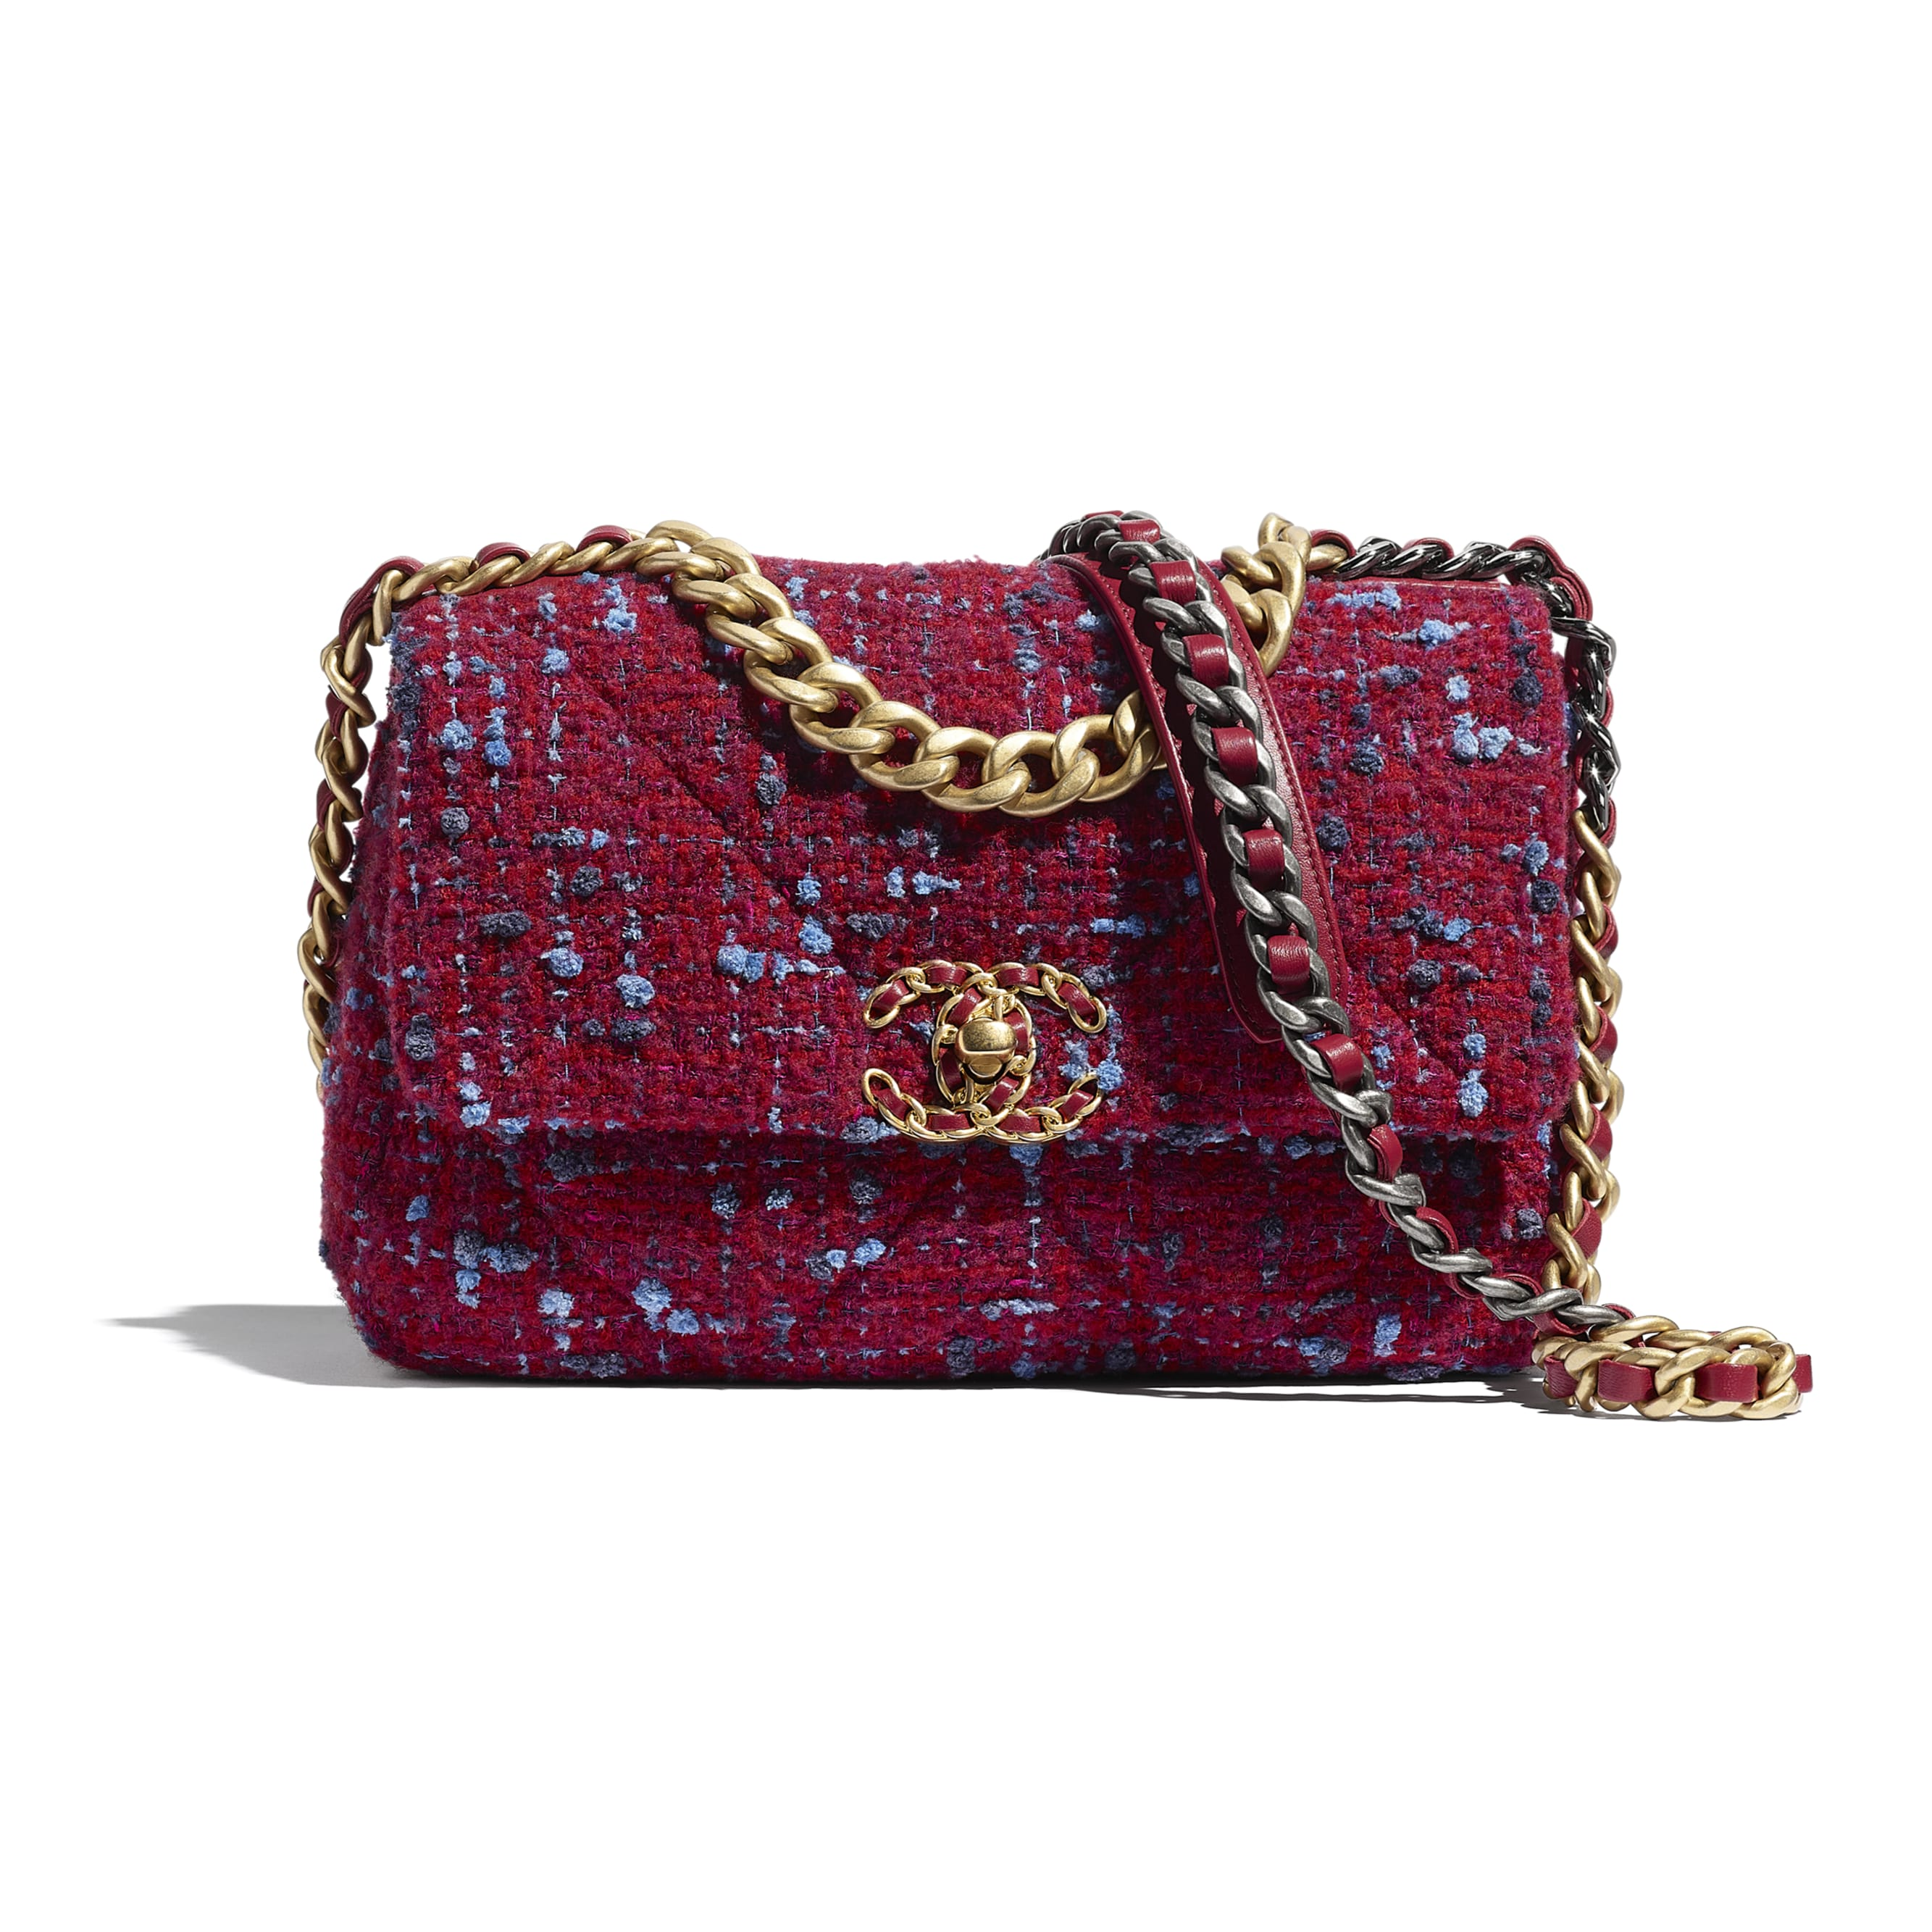 CHANEL 19 Flap Bag - Raspberry Pink - Wool Tweed, Gold-Tone, Silver-Tone & Ruthenium-Finish Metal - CHANEL - Default view - see standard sized version